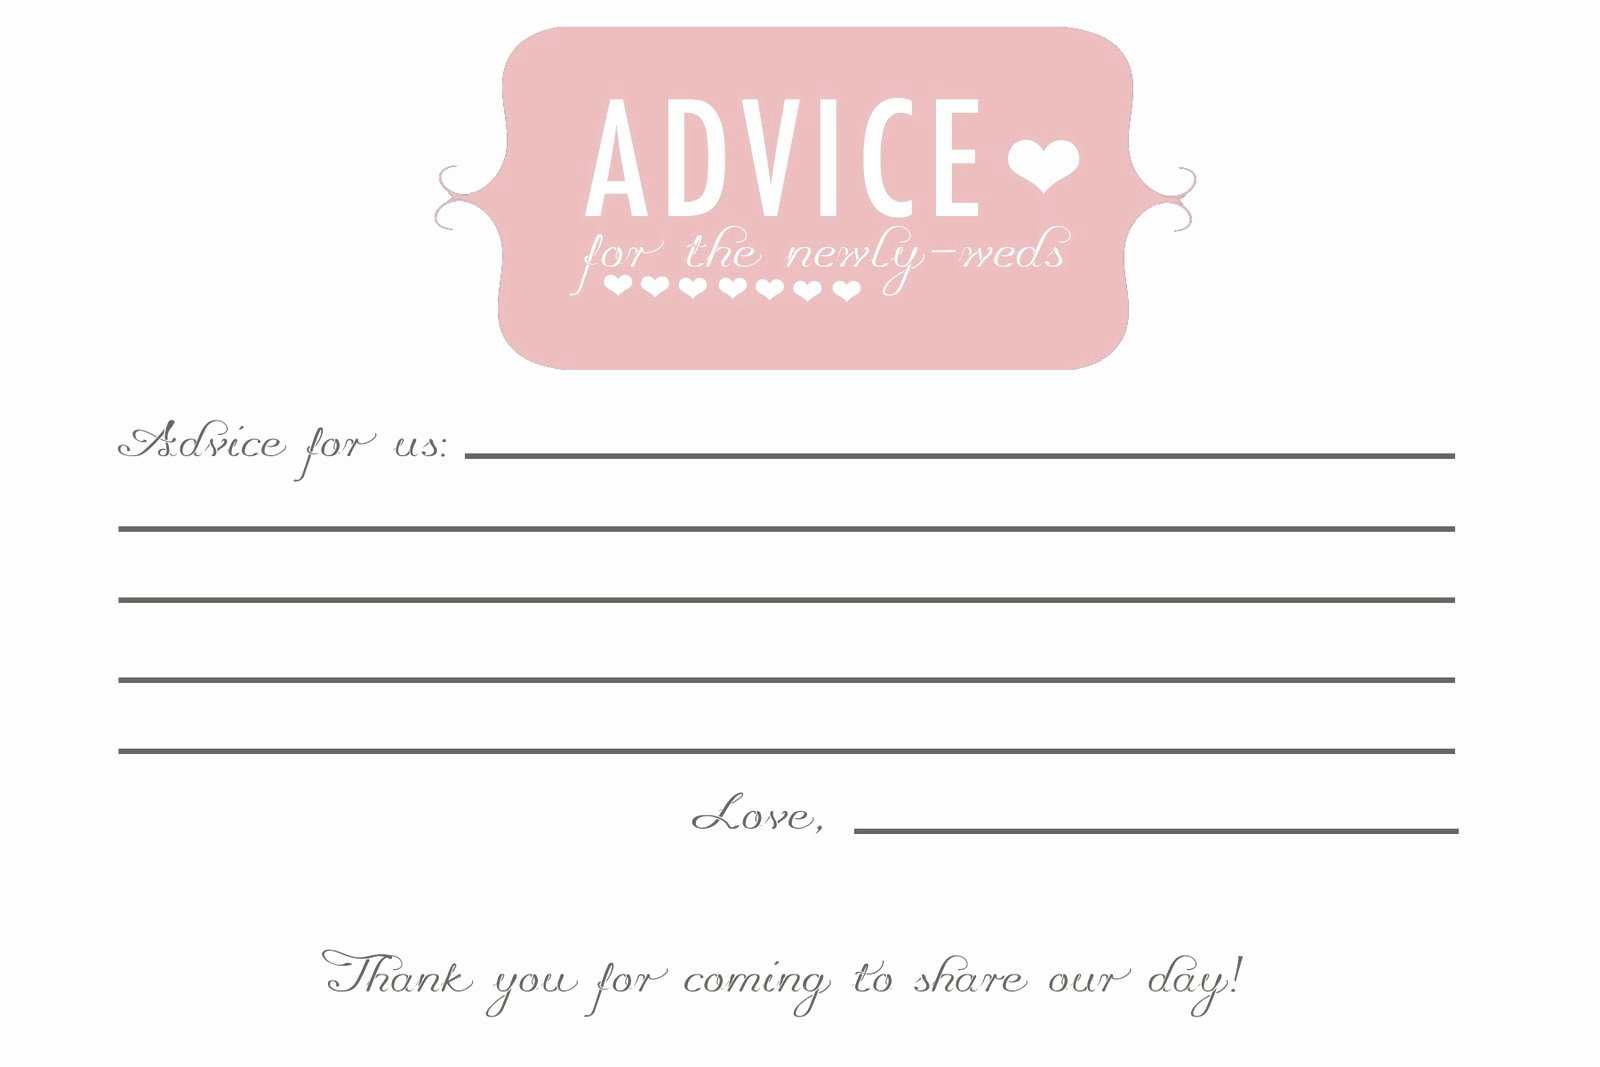 Wedding Advice Cards Template Elegant Did Anyone Do Advice Cards Prediction Cards for Guests